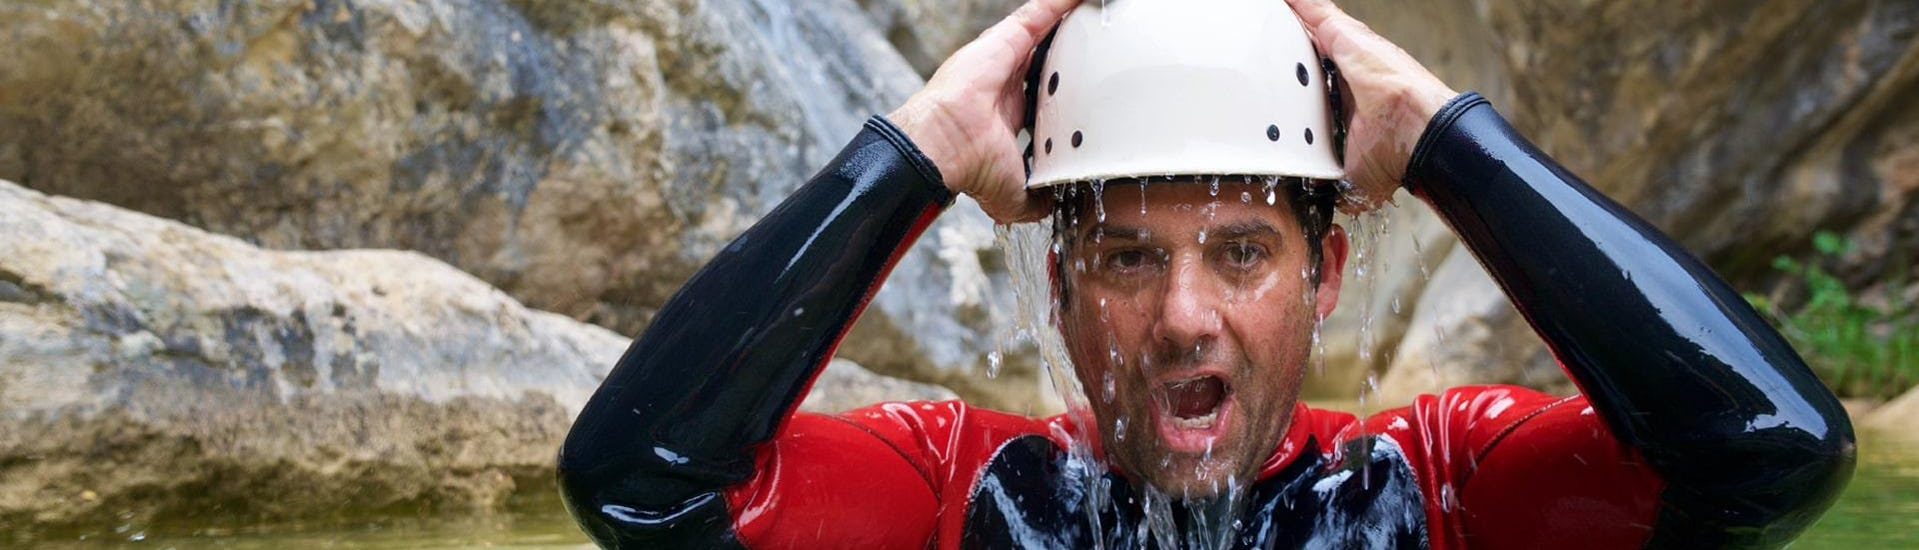 canyoning-for-explorers-wollaschlucht-cam-cool-hero